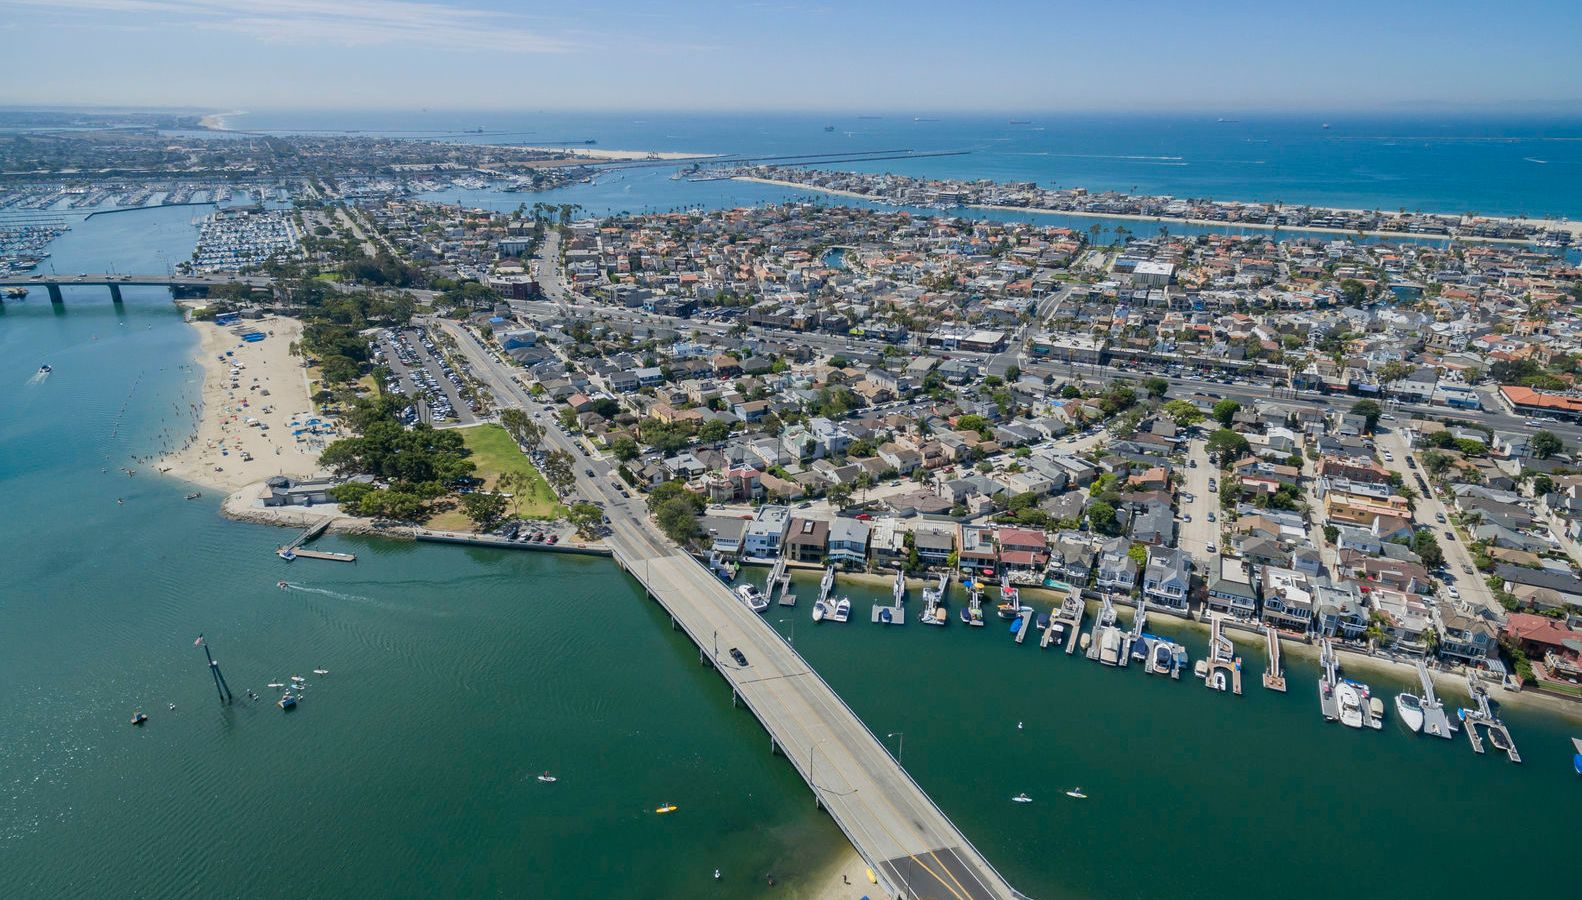 Ariel Photo of Long Beach California